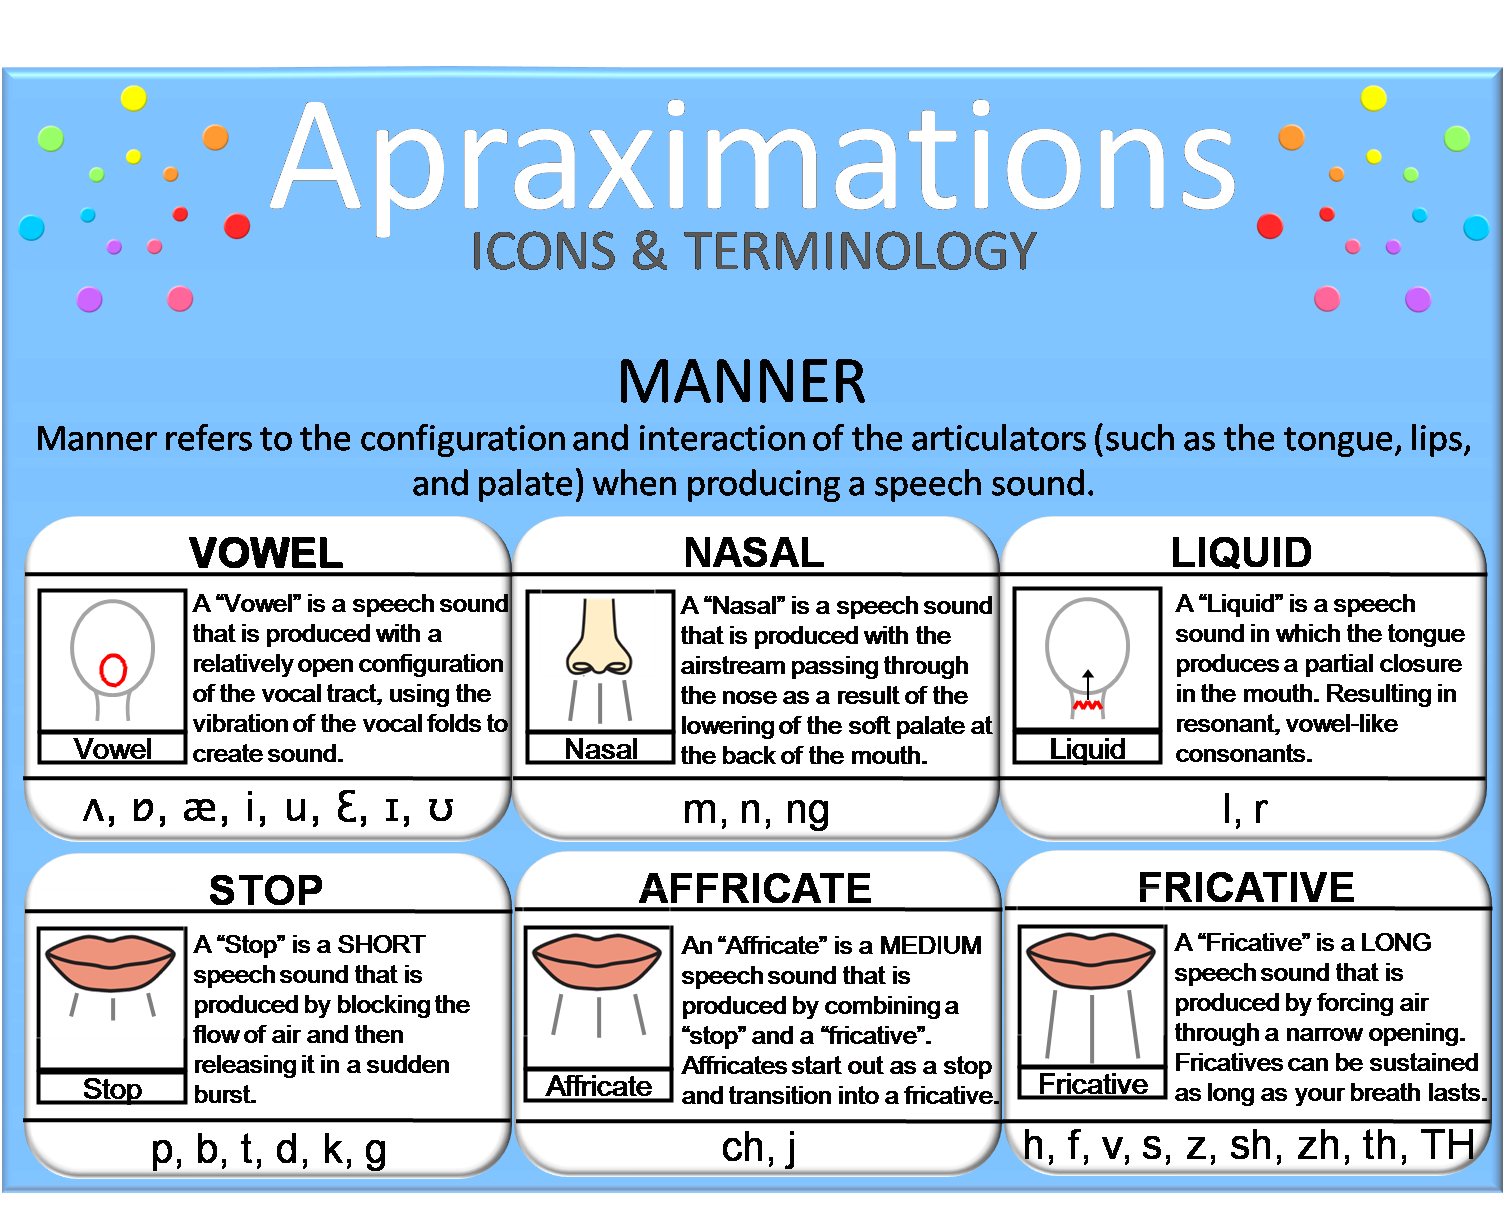 apraximations pic3